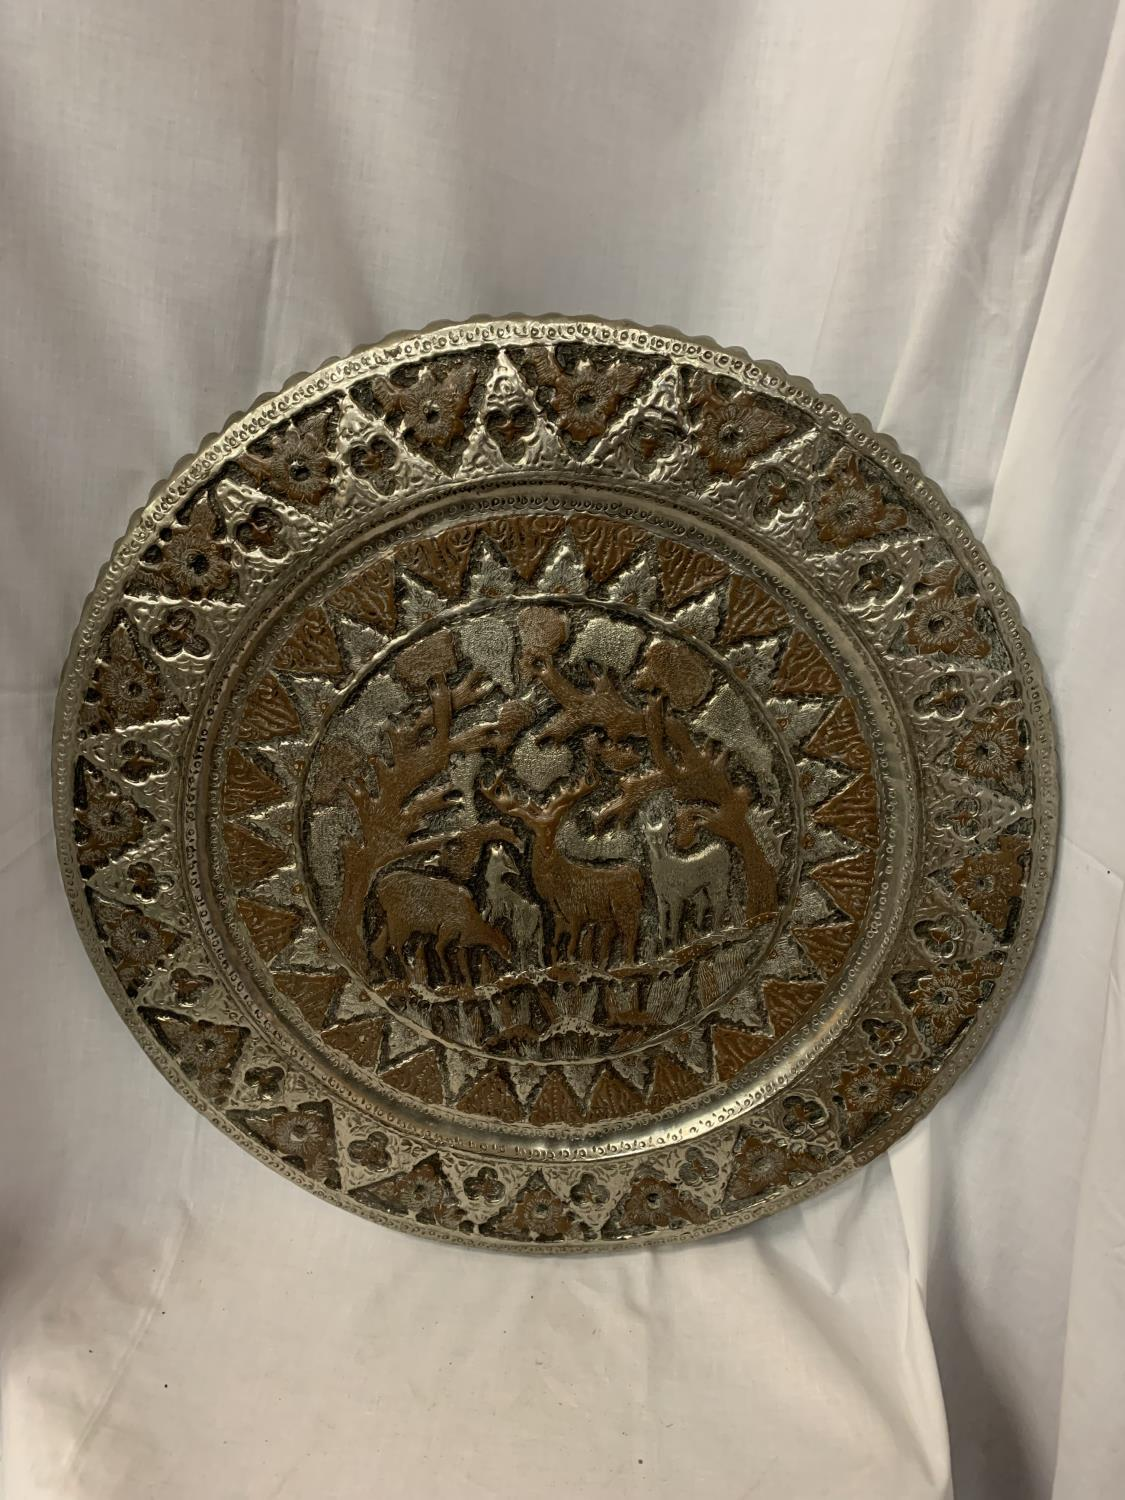 A LARGE MIDDLE EASTERN / ORIENTAL WHITE METAL CHARGER WITH FIGUAL DESIGN